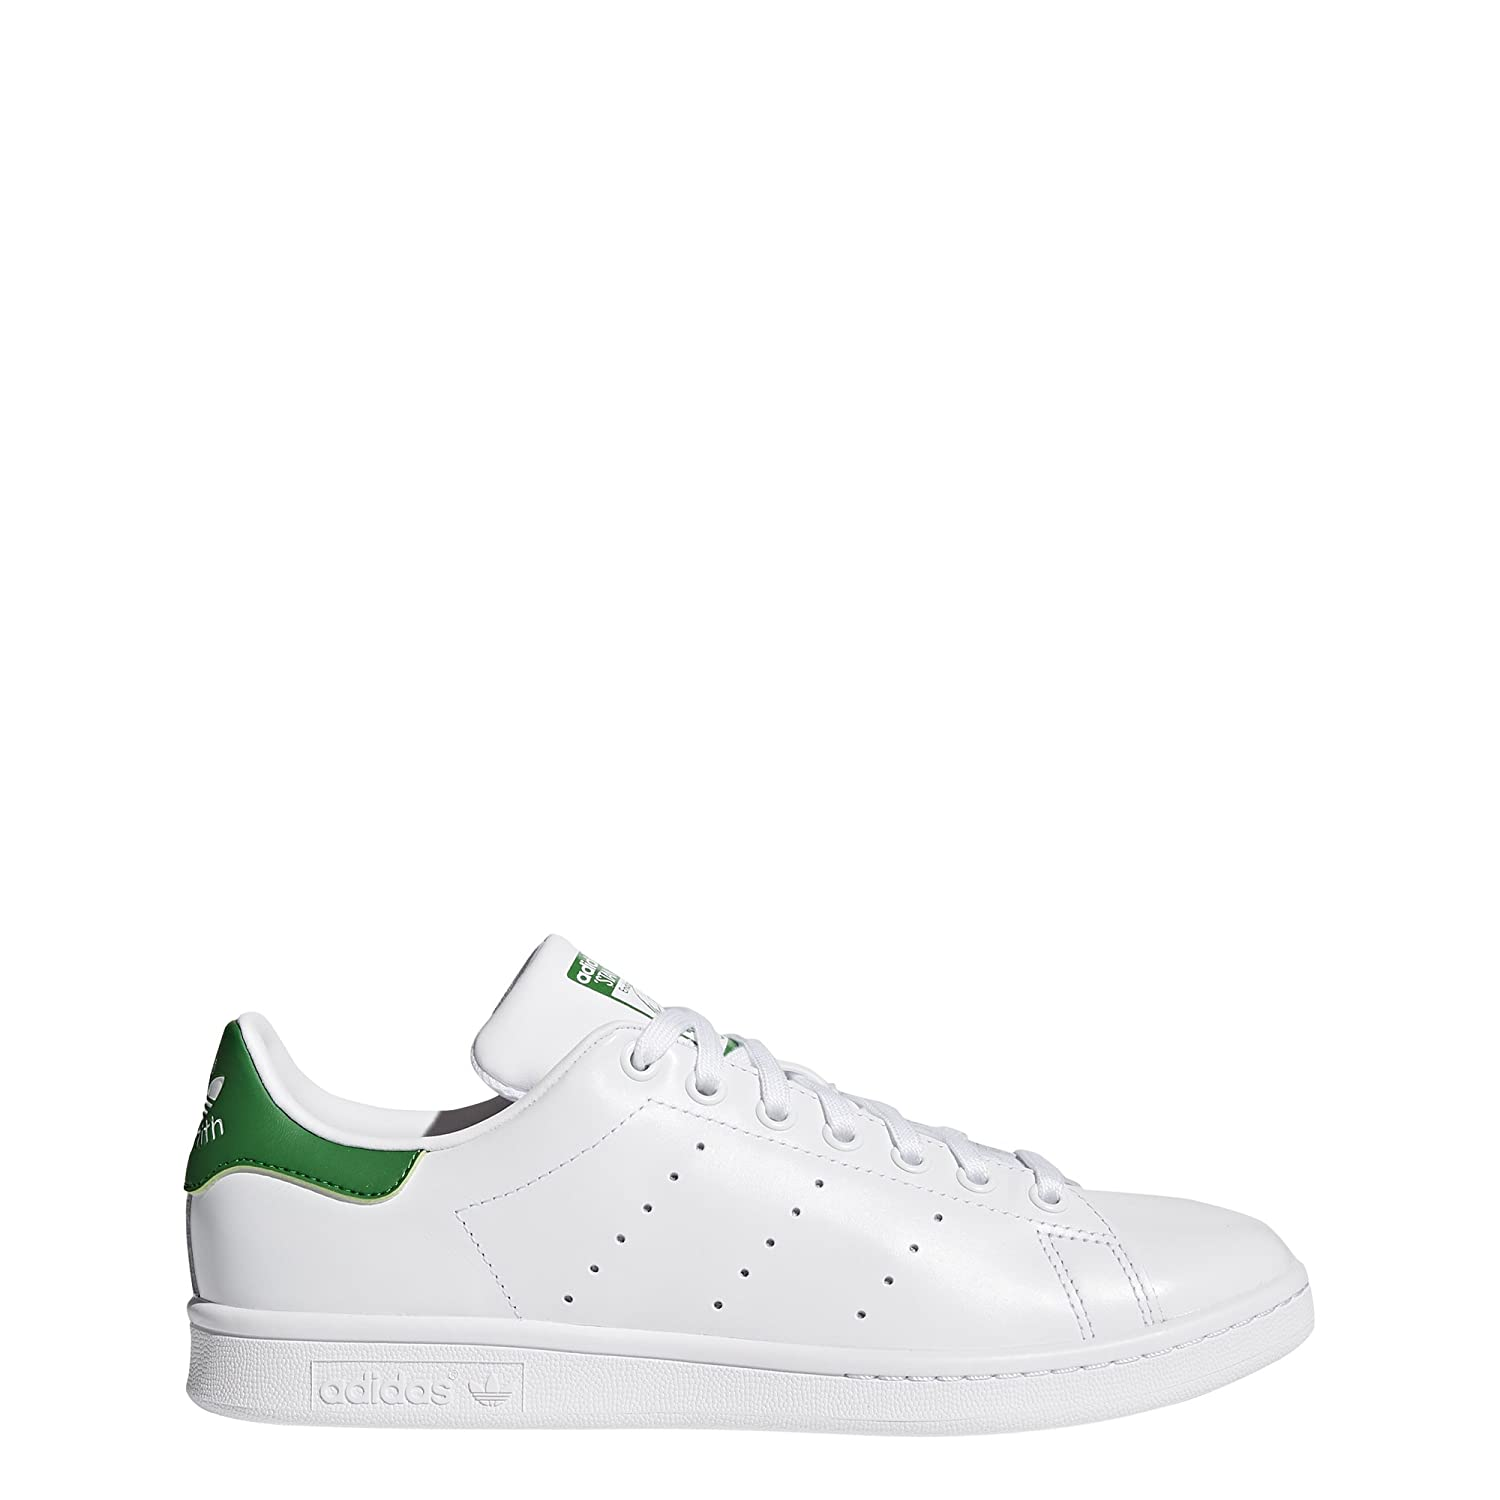 Gentleman/Lady adidas Originals Unisex Adults' Stan Smith Low-Top craftsmanship Trainer Economical and practical discount Superb craftsmanship Low-Top GW2961 a8f2a1